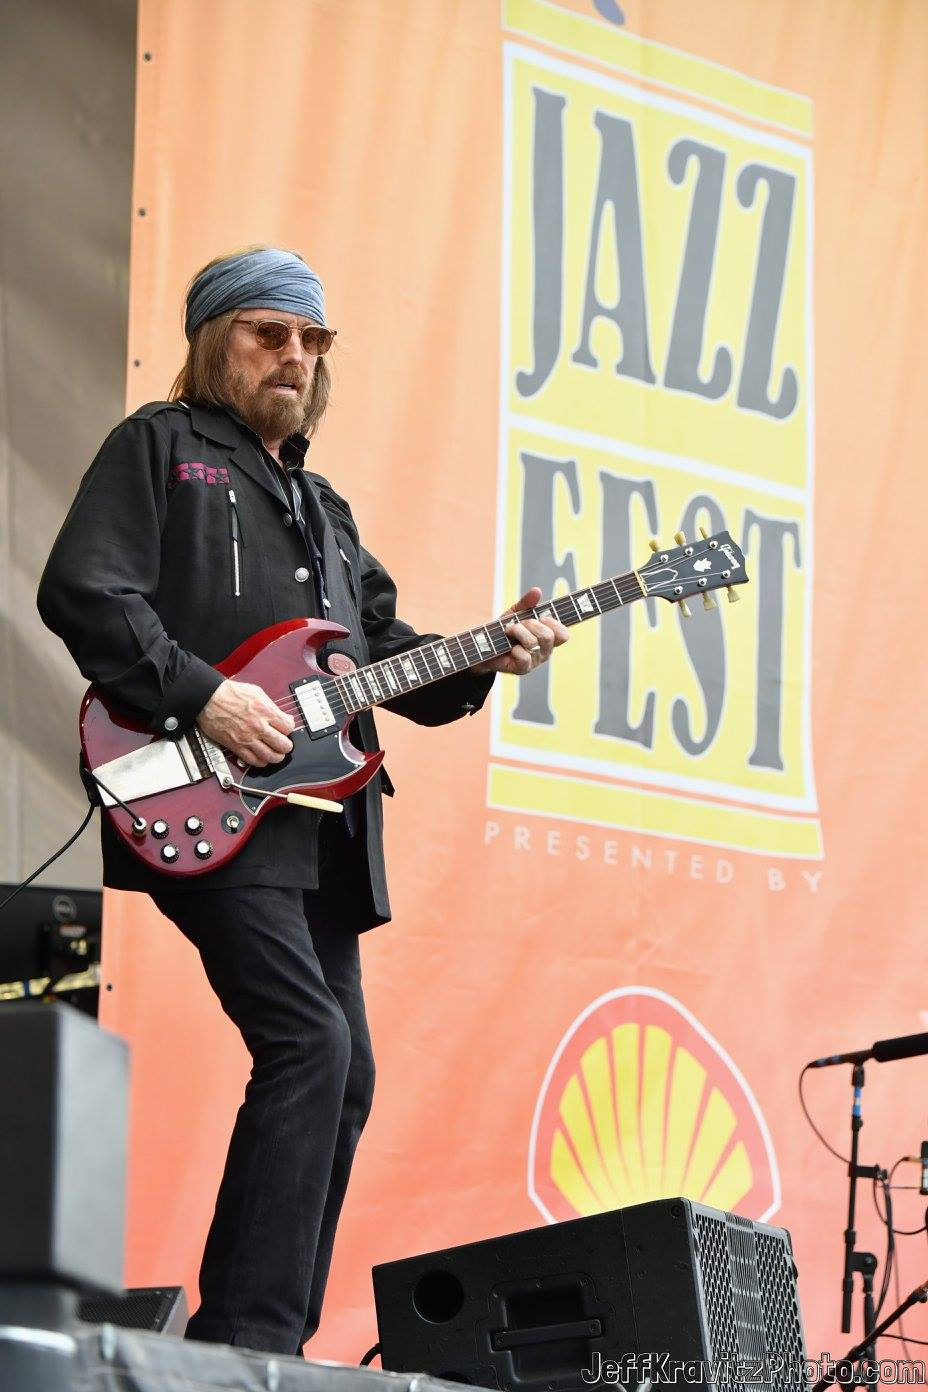 Tom Petty performs onstage during day 3 of the 2017 New Orleans Jazz & Heritage Festival at Fair Grounds Race Course on April 30, 2017 in New Orleans, Louisiana.